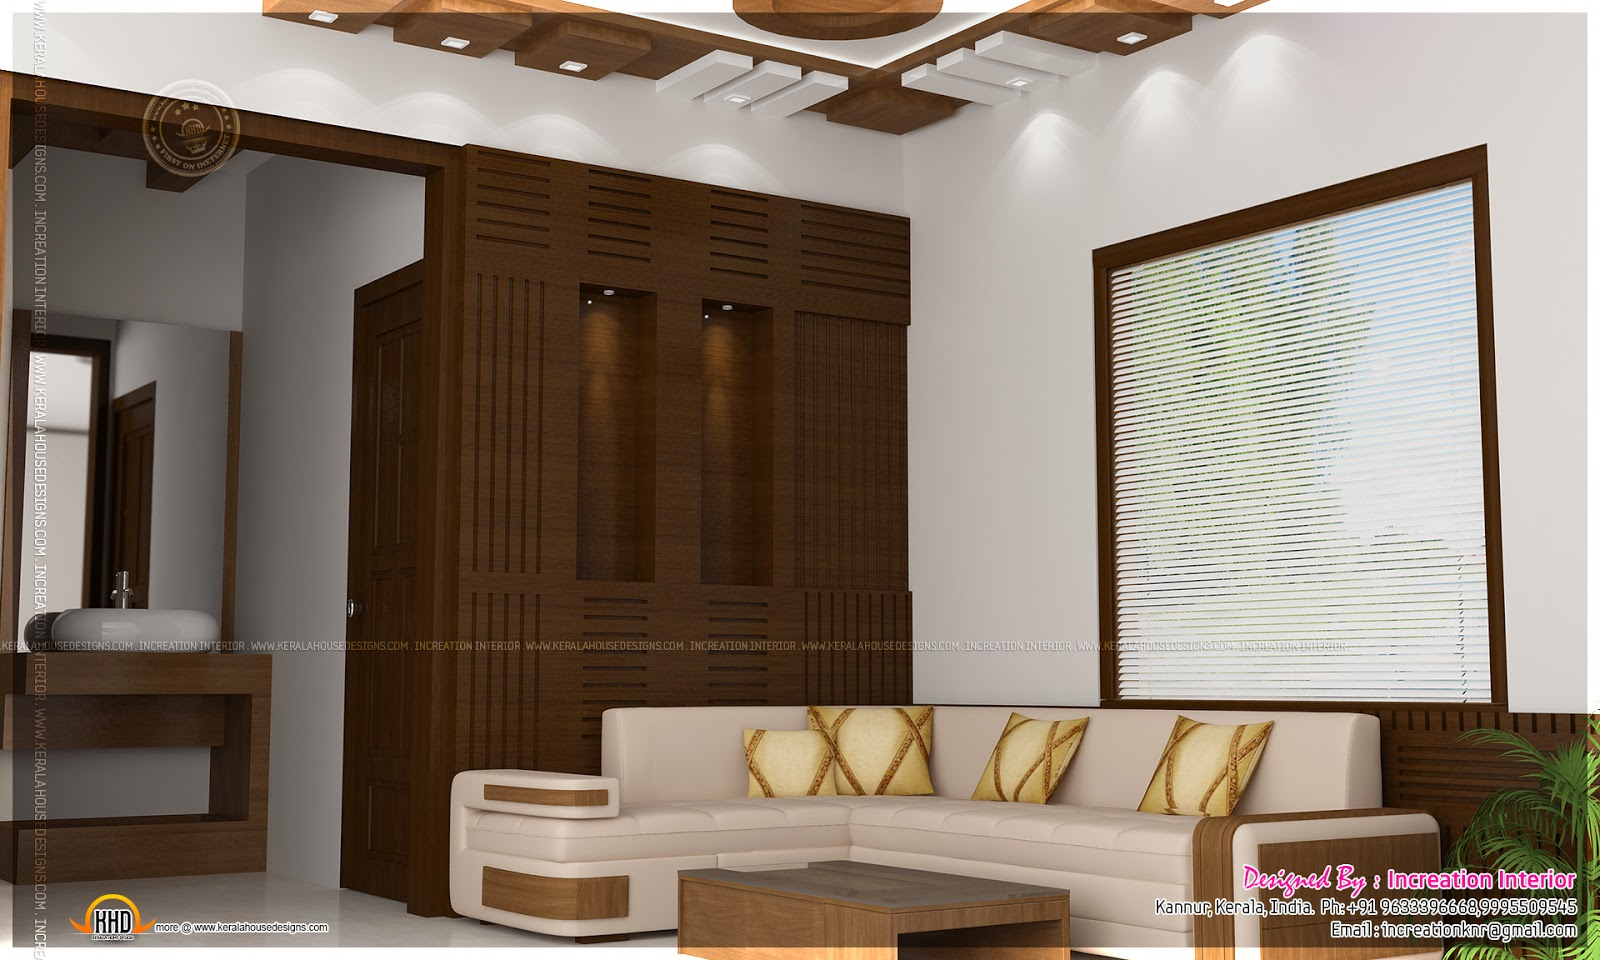 Interior design ideas by increation interior kerala for The best interior designs of homes